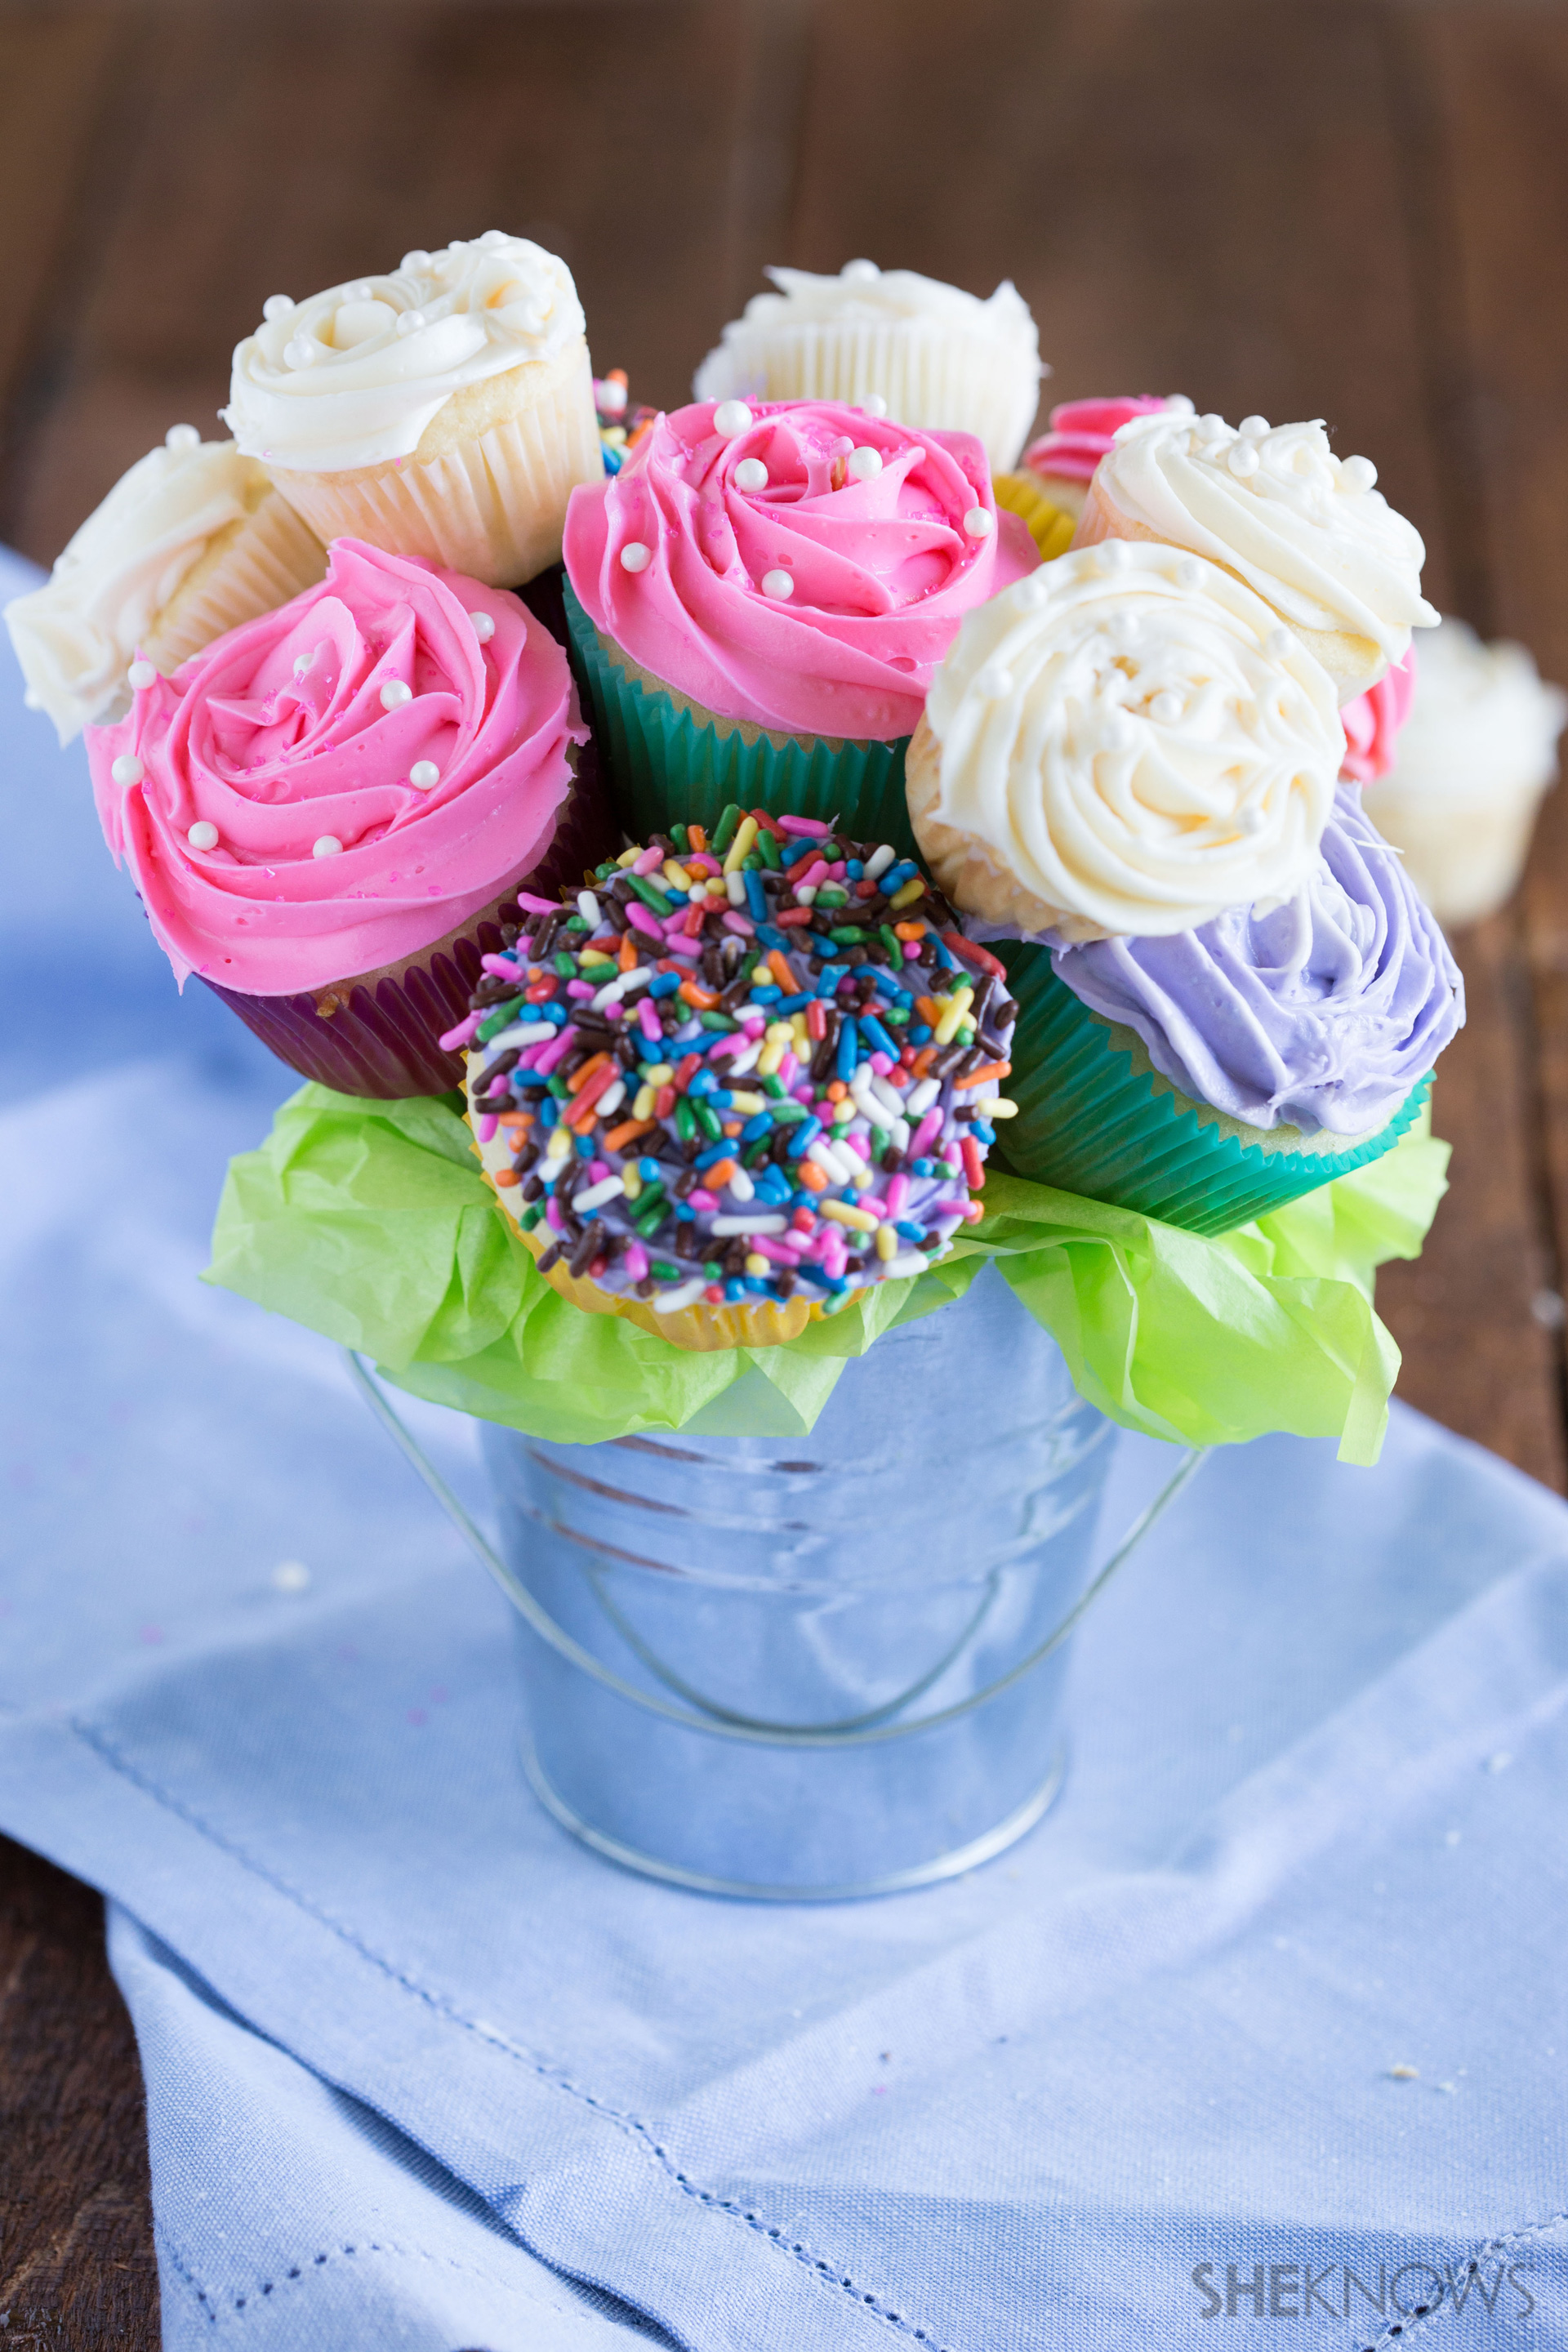 The cupcake bouquet... Like getting flowers, but sooo much sweeter.